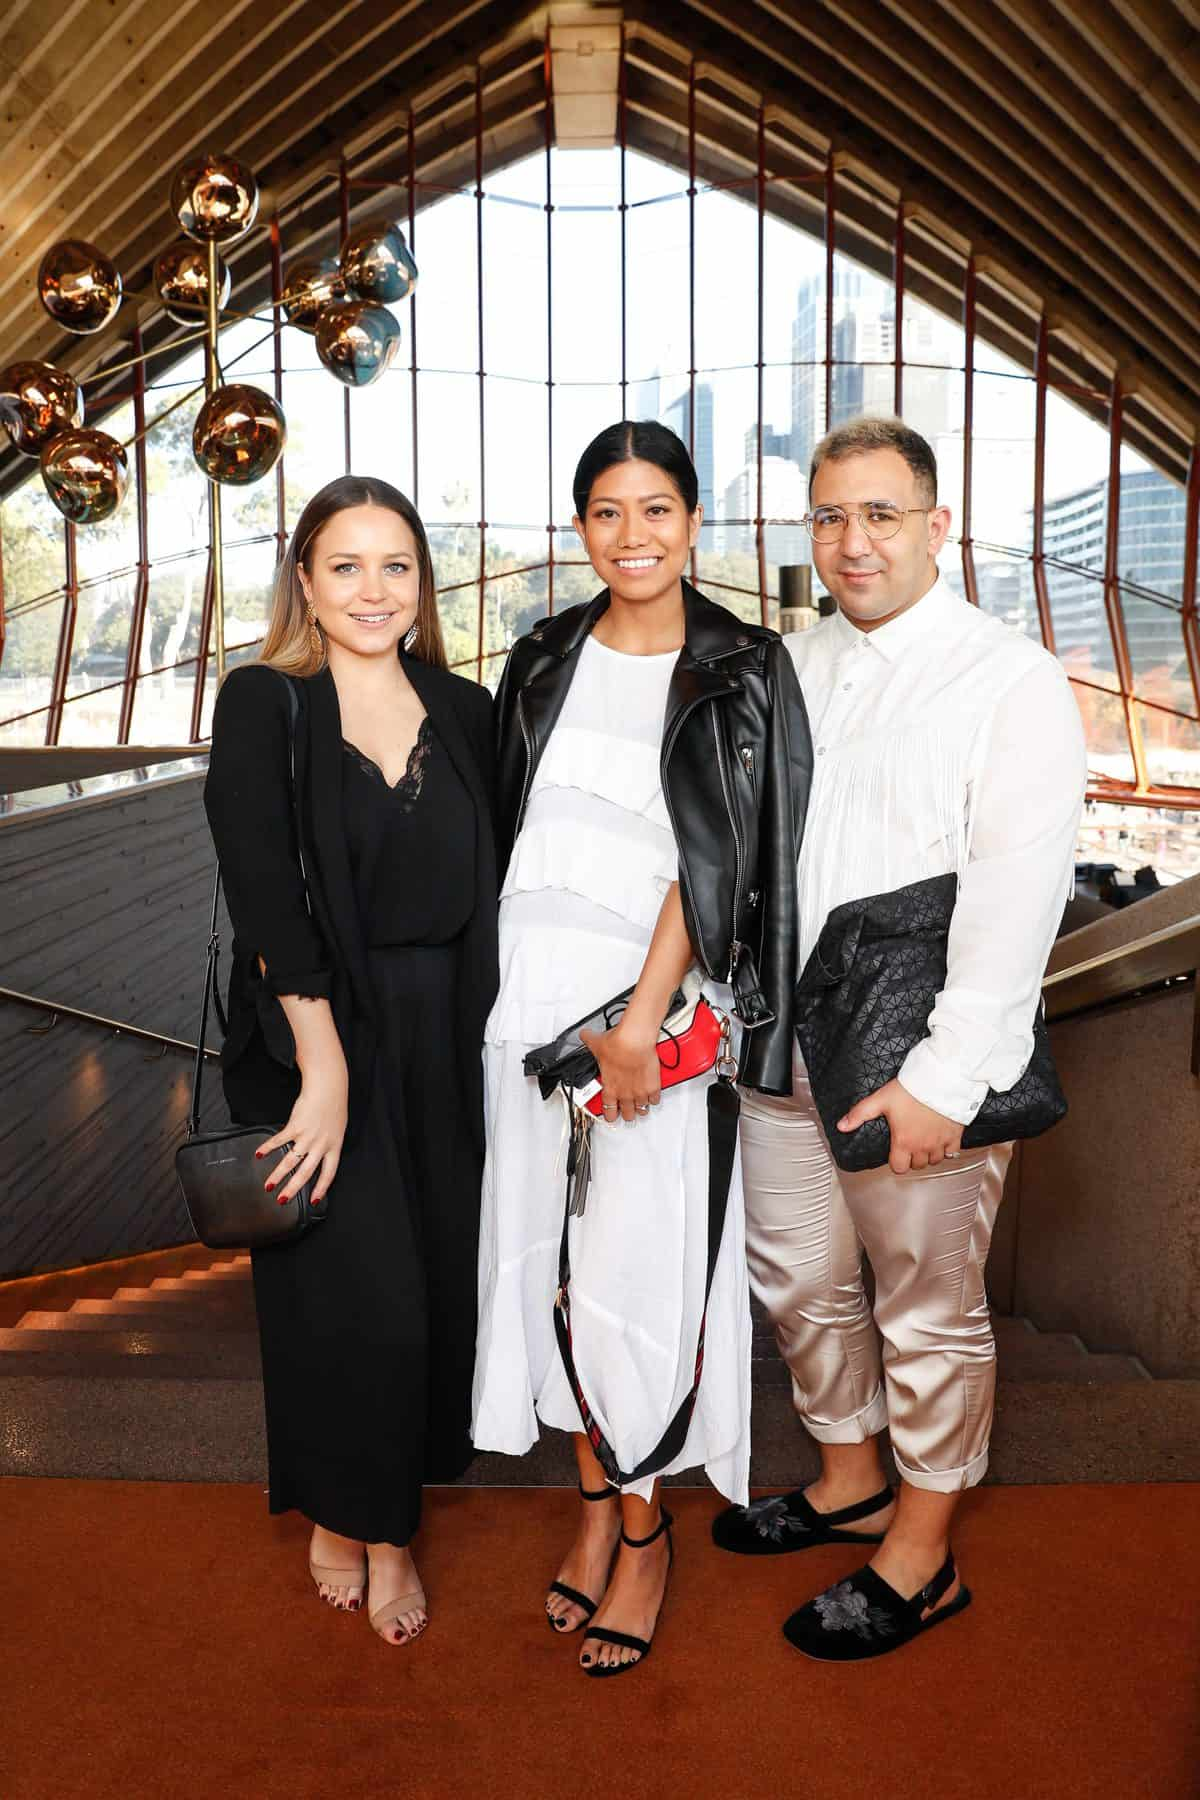 Ali Beeck, Venus Landero and Michelle Simmonds attend the Fashion Mingle Australia VIP Luncheon at Bennelong Restaurant Sydney Opera House on May 14, 2019 in Sydney, Australia. (Photo by Hanna Lassen/Getty Images for Fashion Mingle)